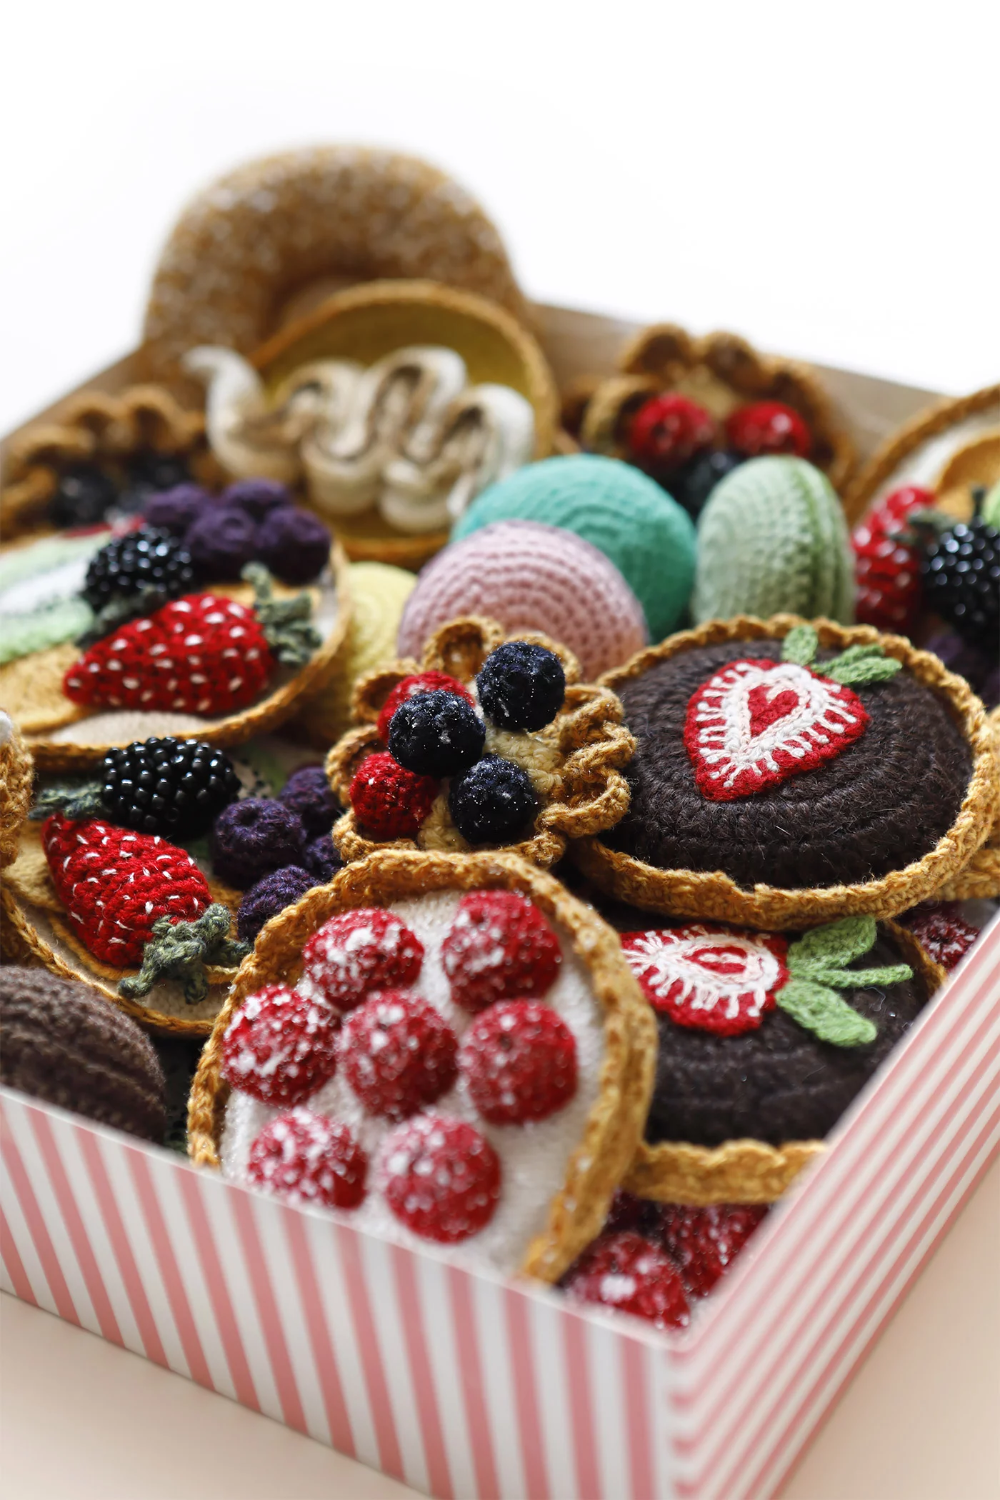 Knitted Food Artworks